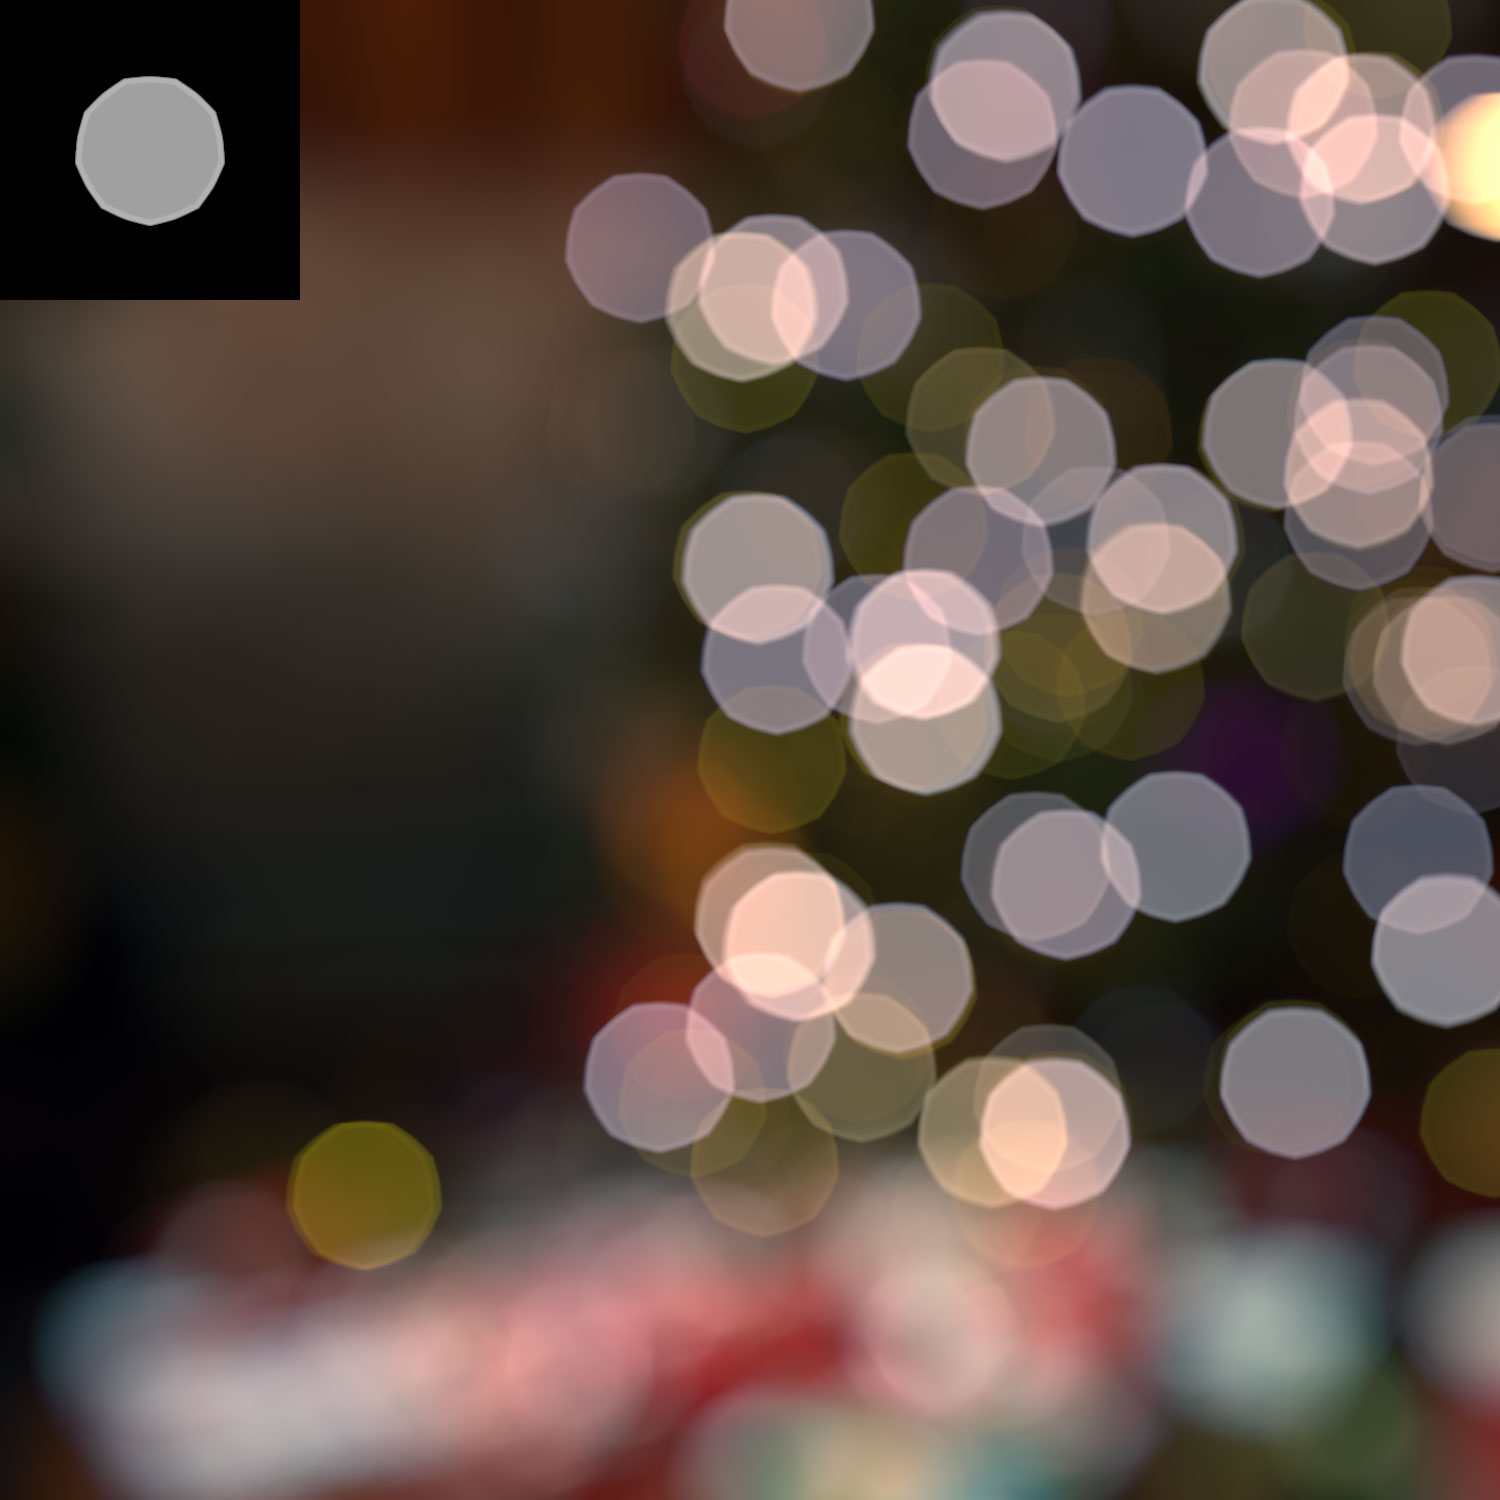 Focus blur, in linear space with HDR source